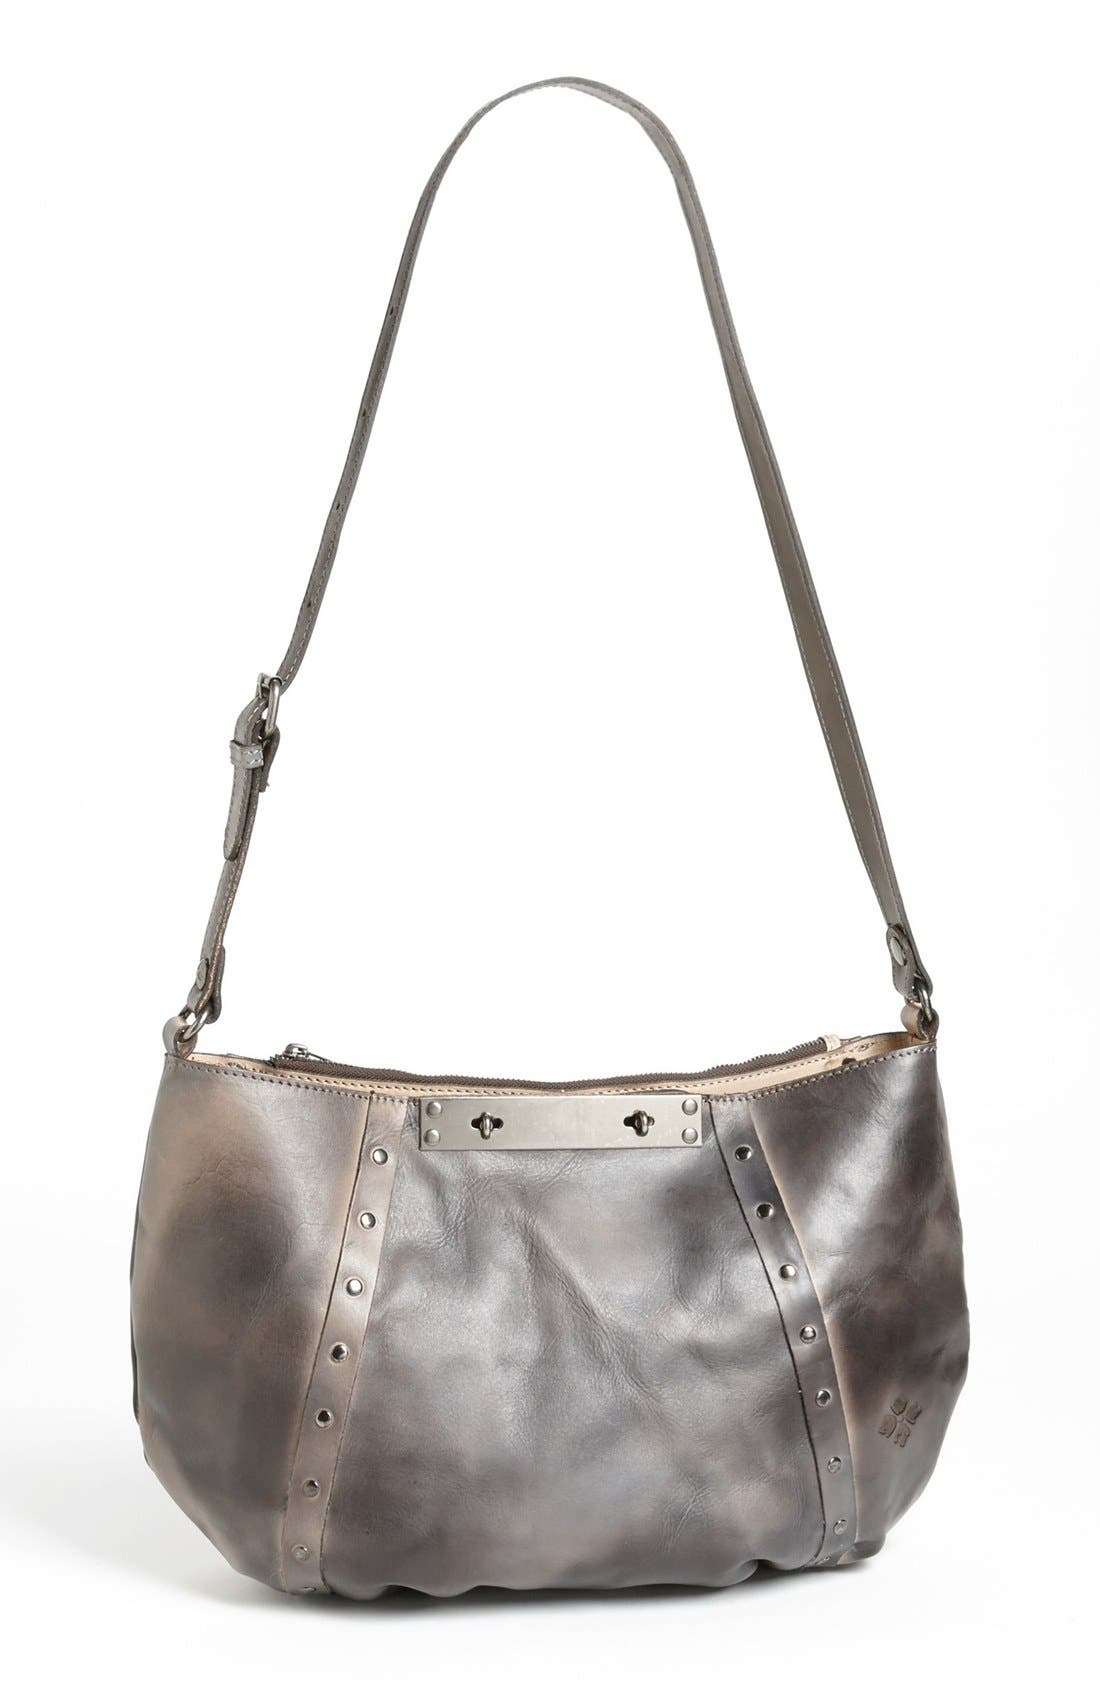 Main Image - Patricia Nash 'Bucciano' Leather Shoulder Bag